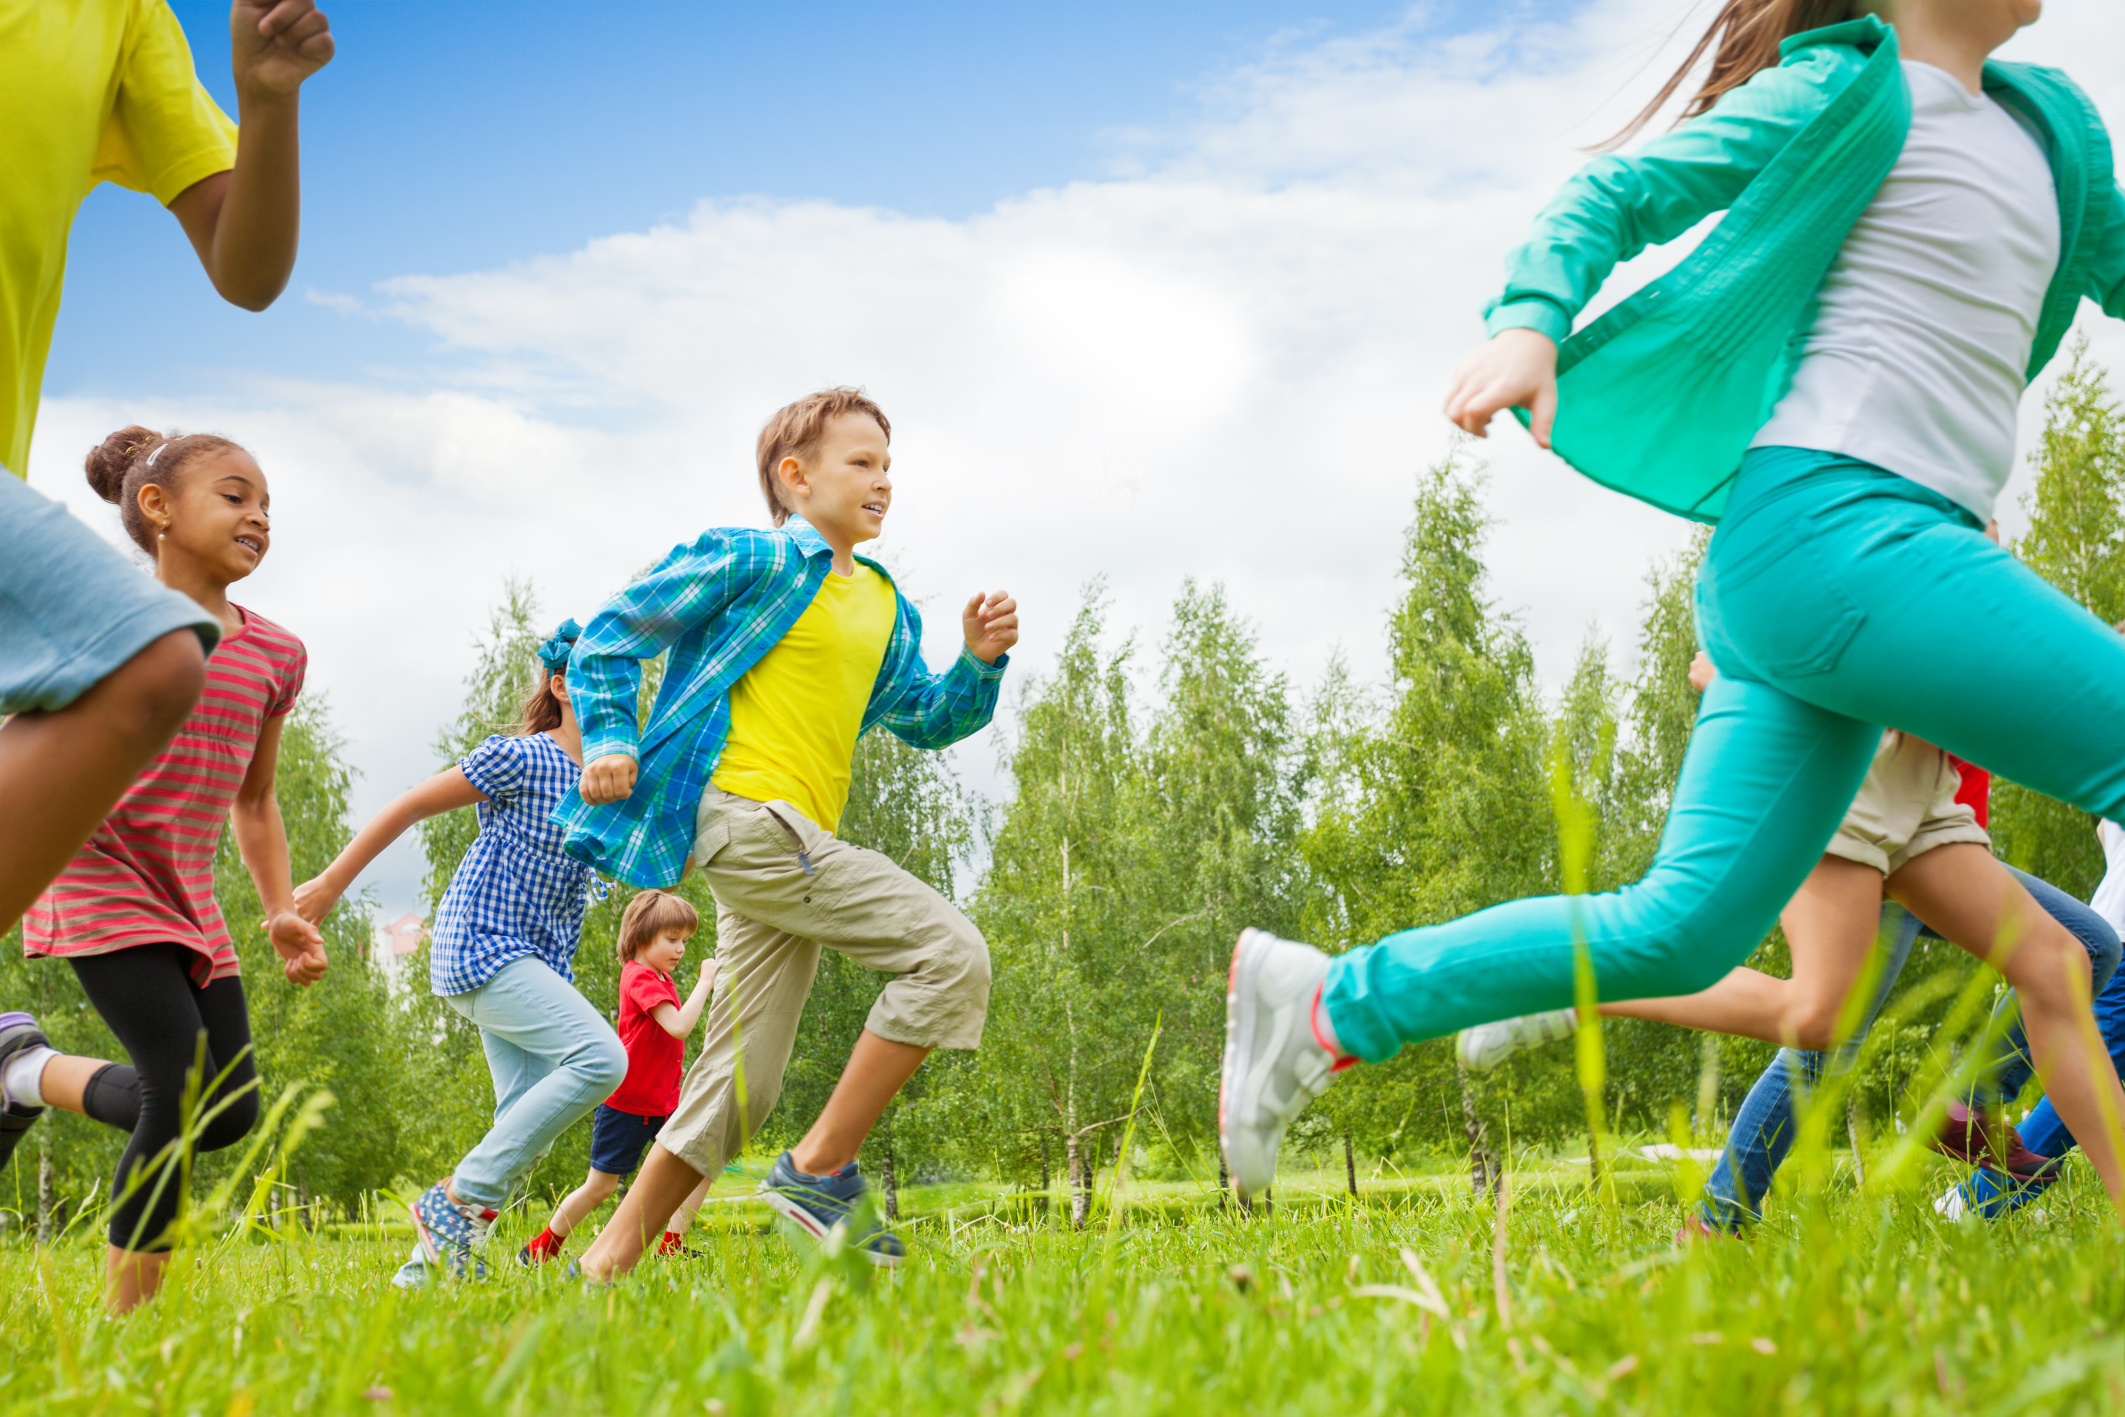 Cystic fibrosis (CF) patients suffer from infection and inflammation, exercise can enhance quality of life